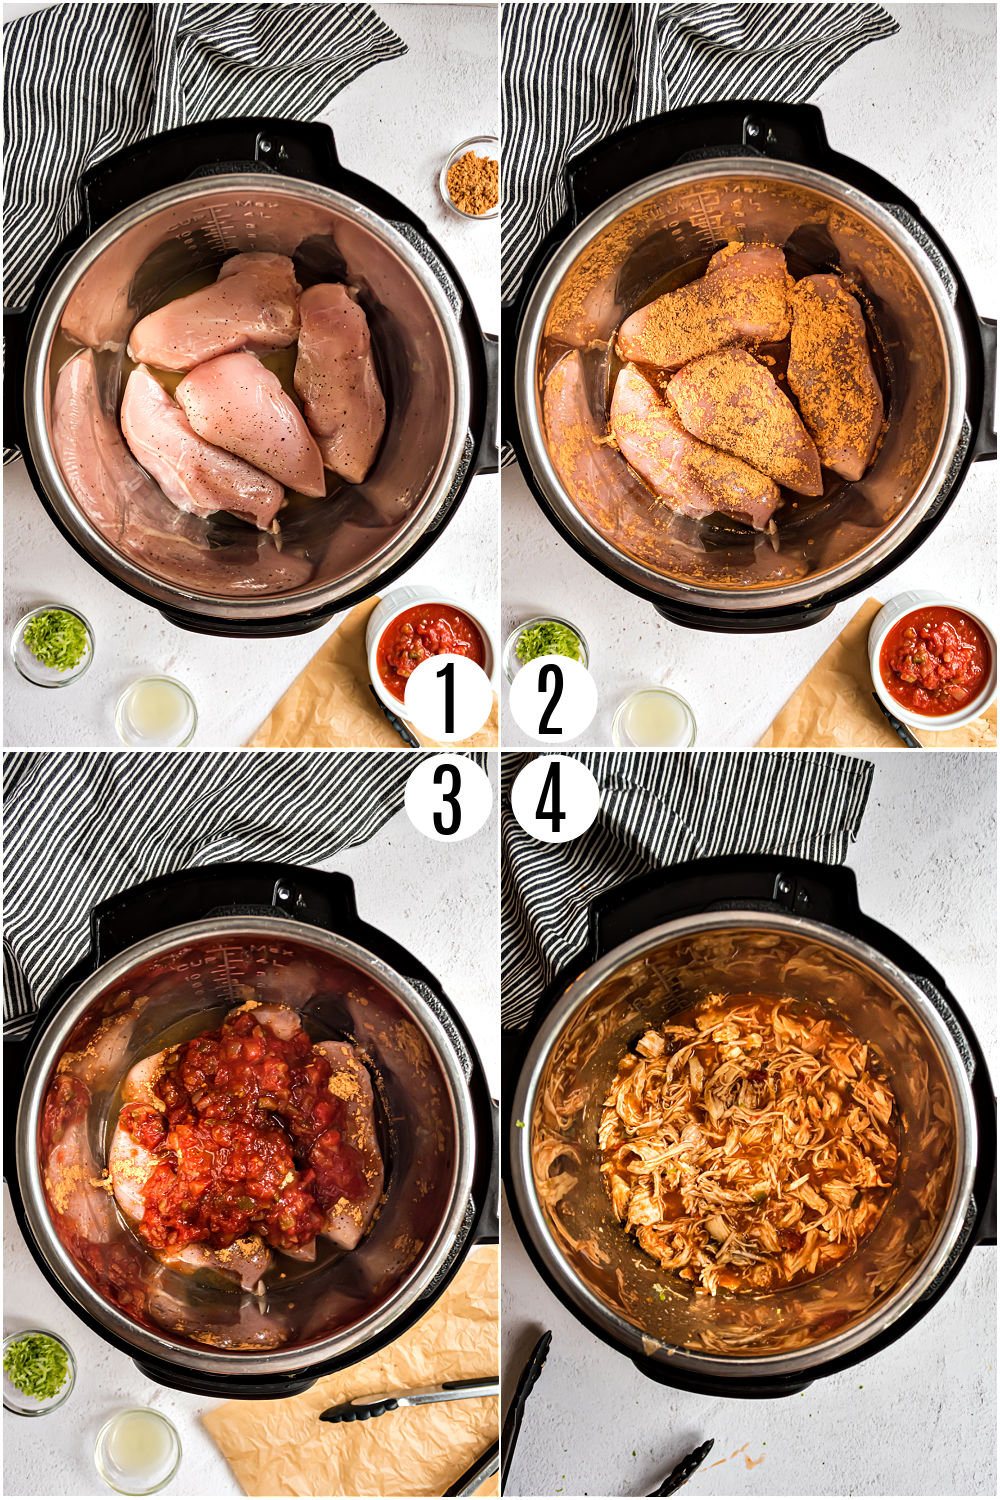 Step by step photos showing how to make chicken tacos in the instant pot.